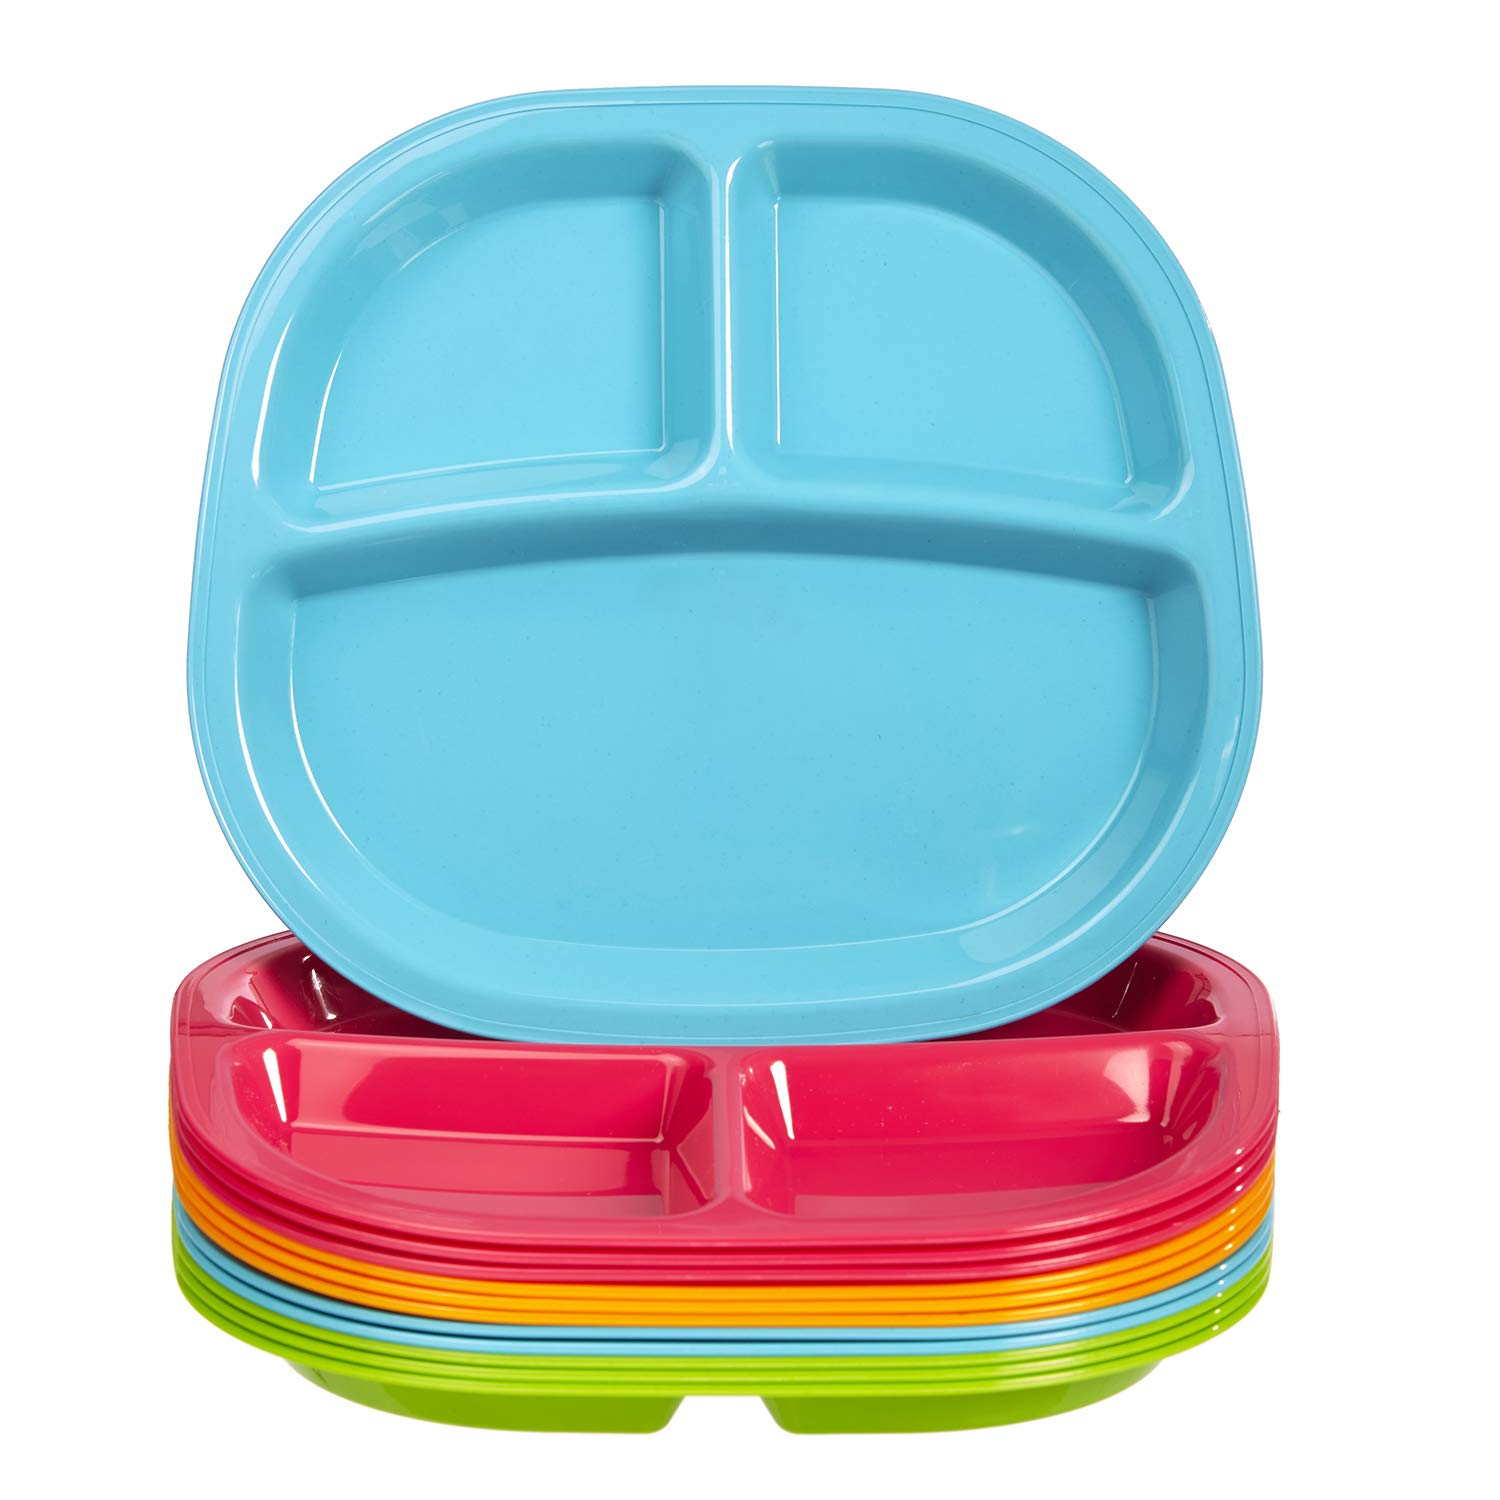 Harmony 3-Compartment Divided Plastic Kids Tray | set of 12 in 4 Calypso Colors by US Acrylic